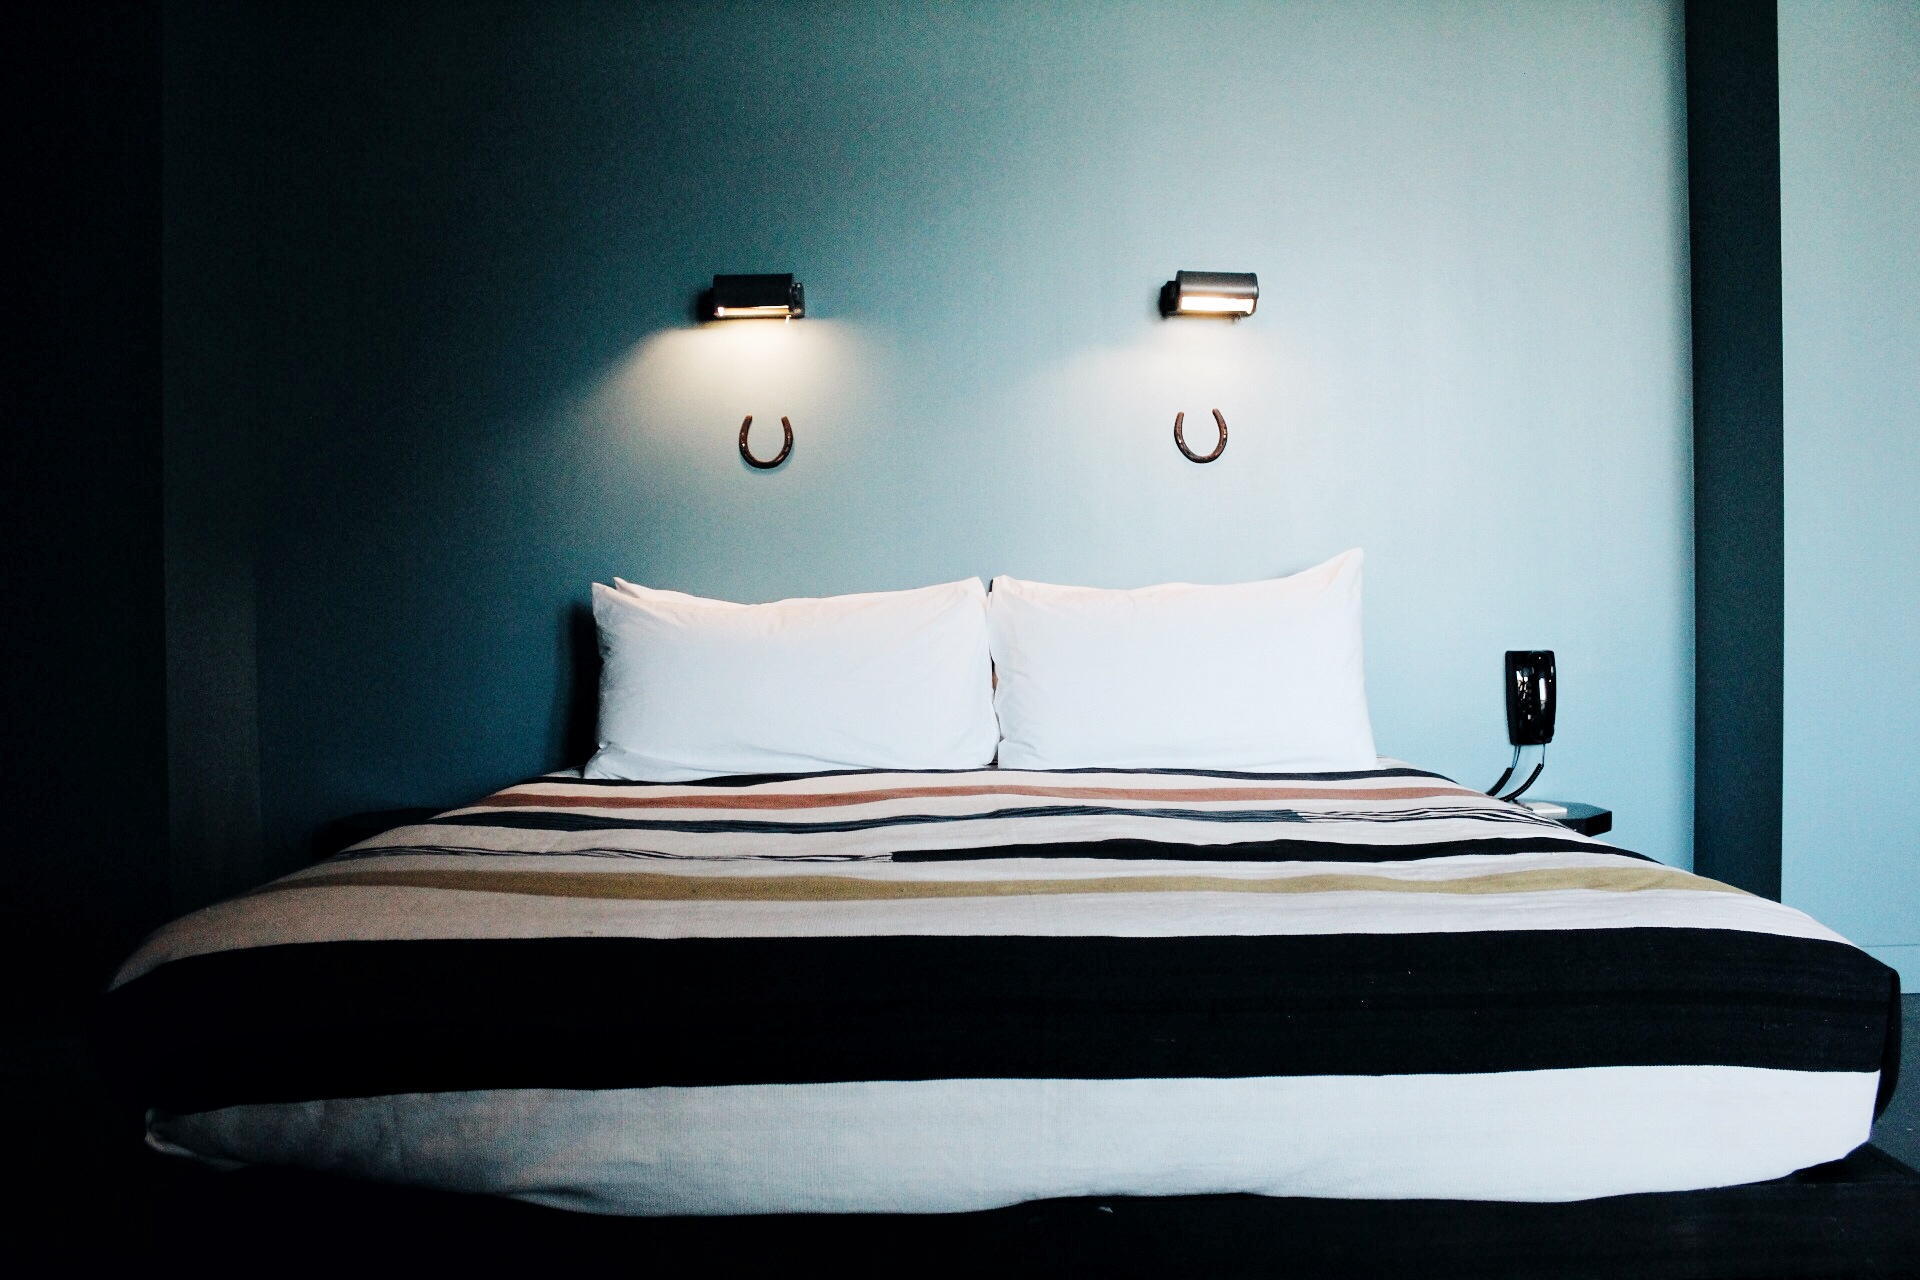 The Carpenter Hotel  in Austin, Texas by Três Gigi | The combination of minimalist, modern and Texan design that this hotel carries instantly puts it at the top of my list when it comes to favorite boutique hotels in ATX. The Carpenter Hotel is the epitome of modern Texan design.